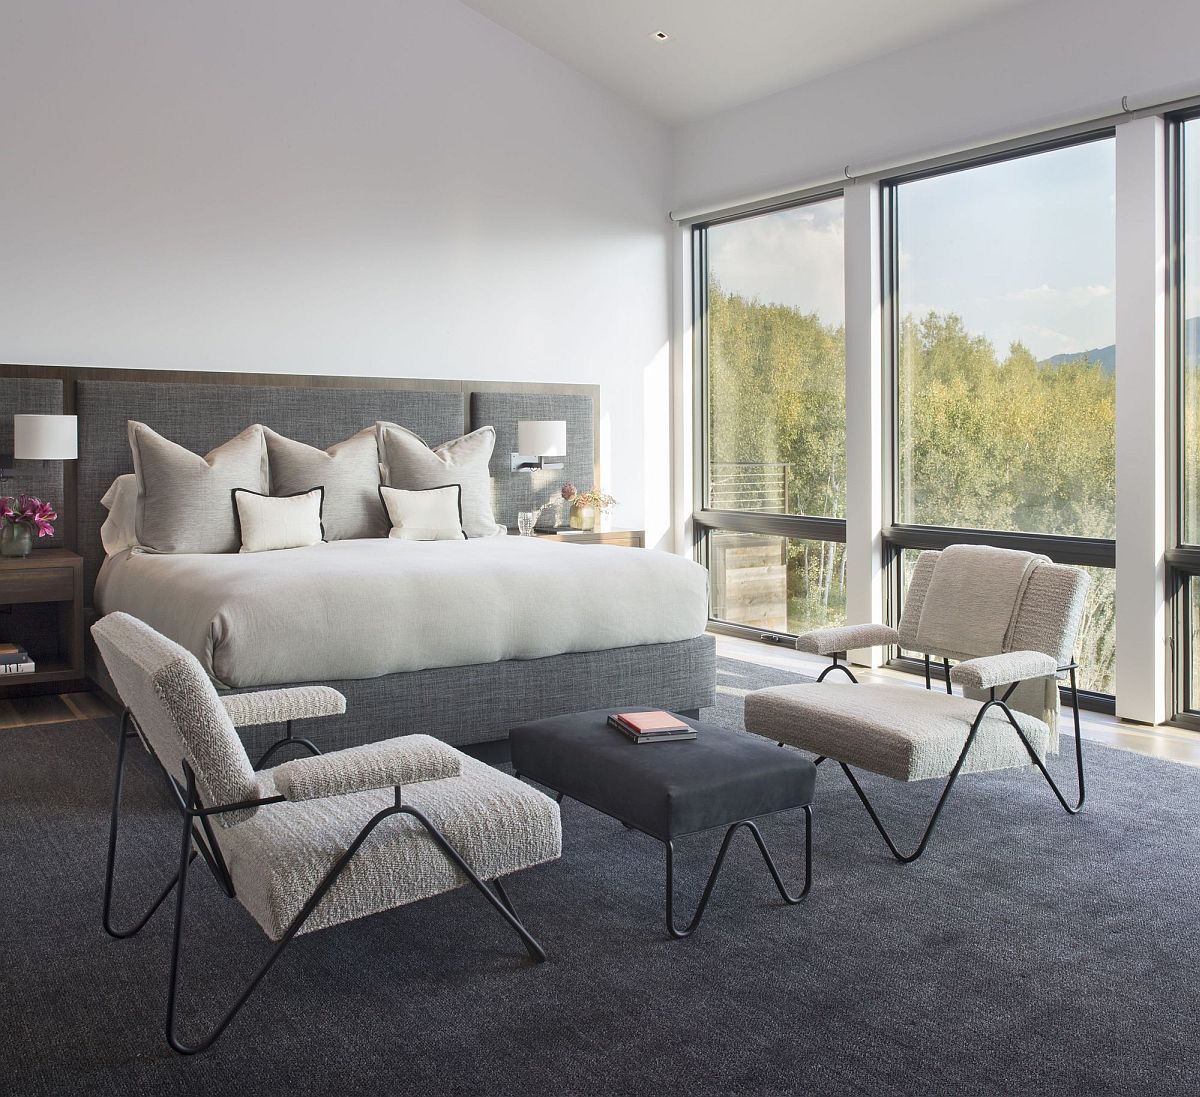 Modern gray and white bedroom with fabulou mountain views in the distance